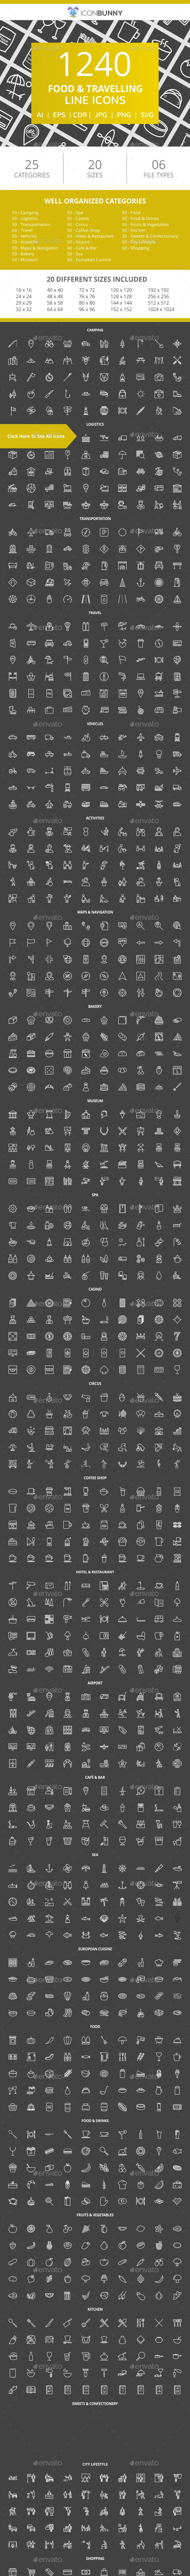 1240 Food & Travelling Line Inverted Icons - Icons